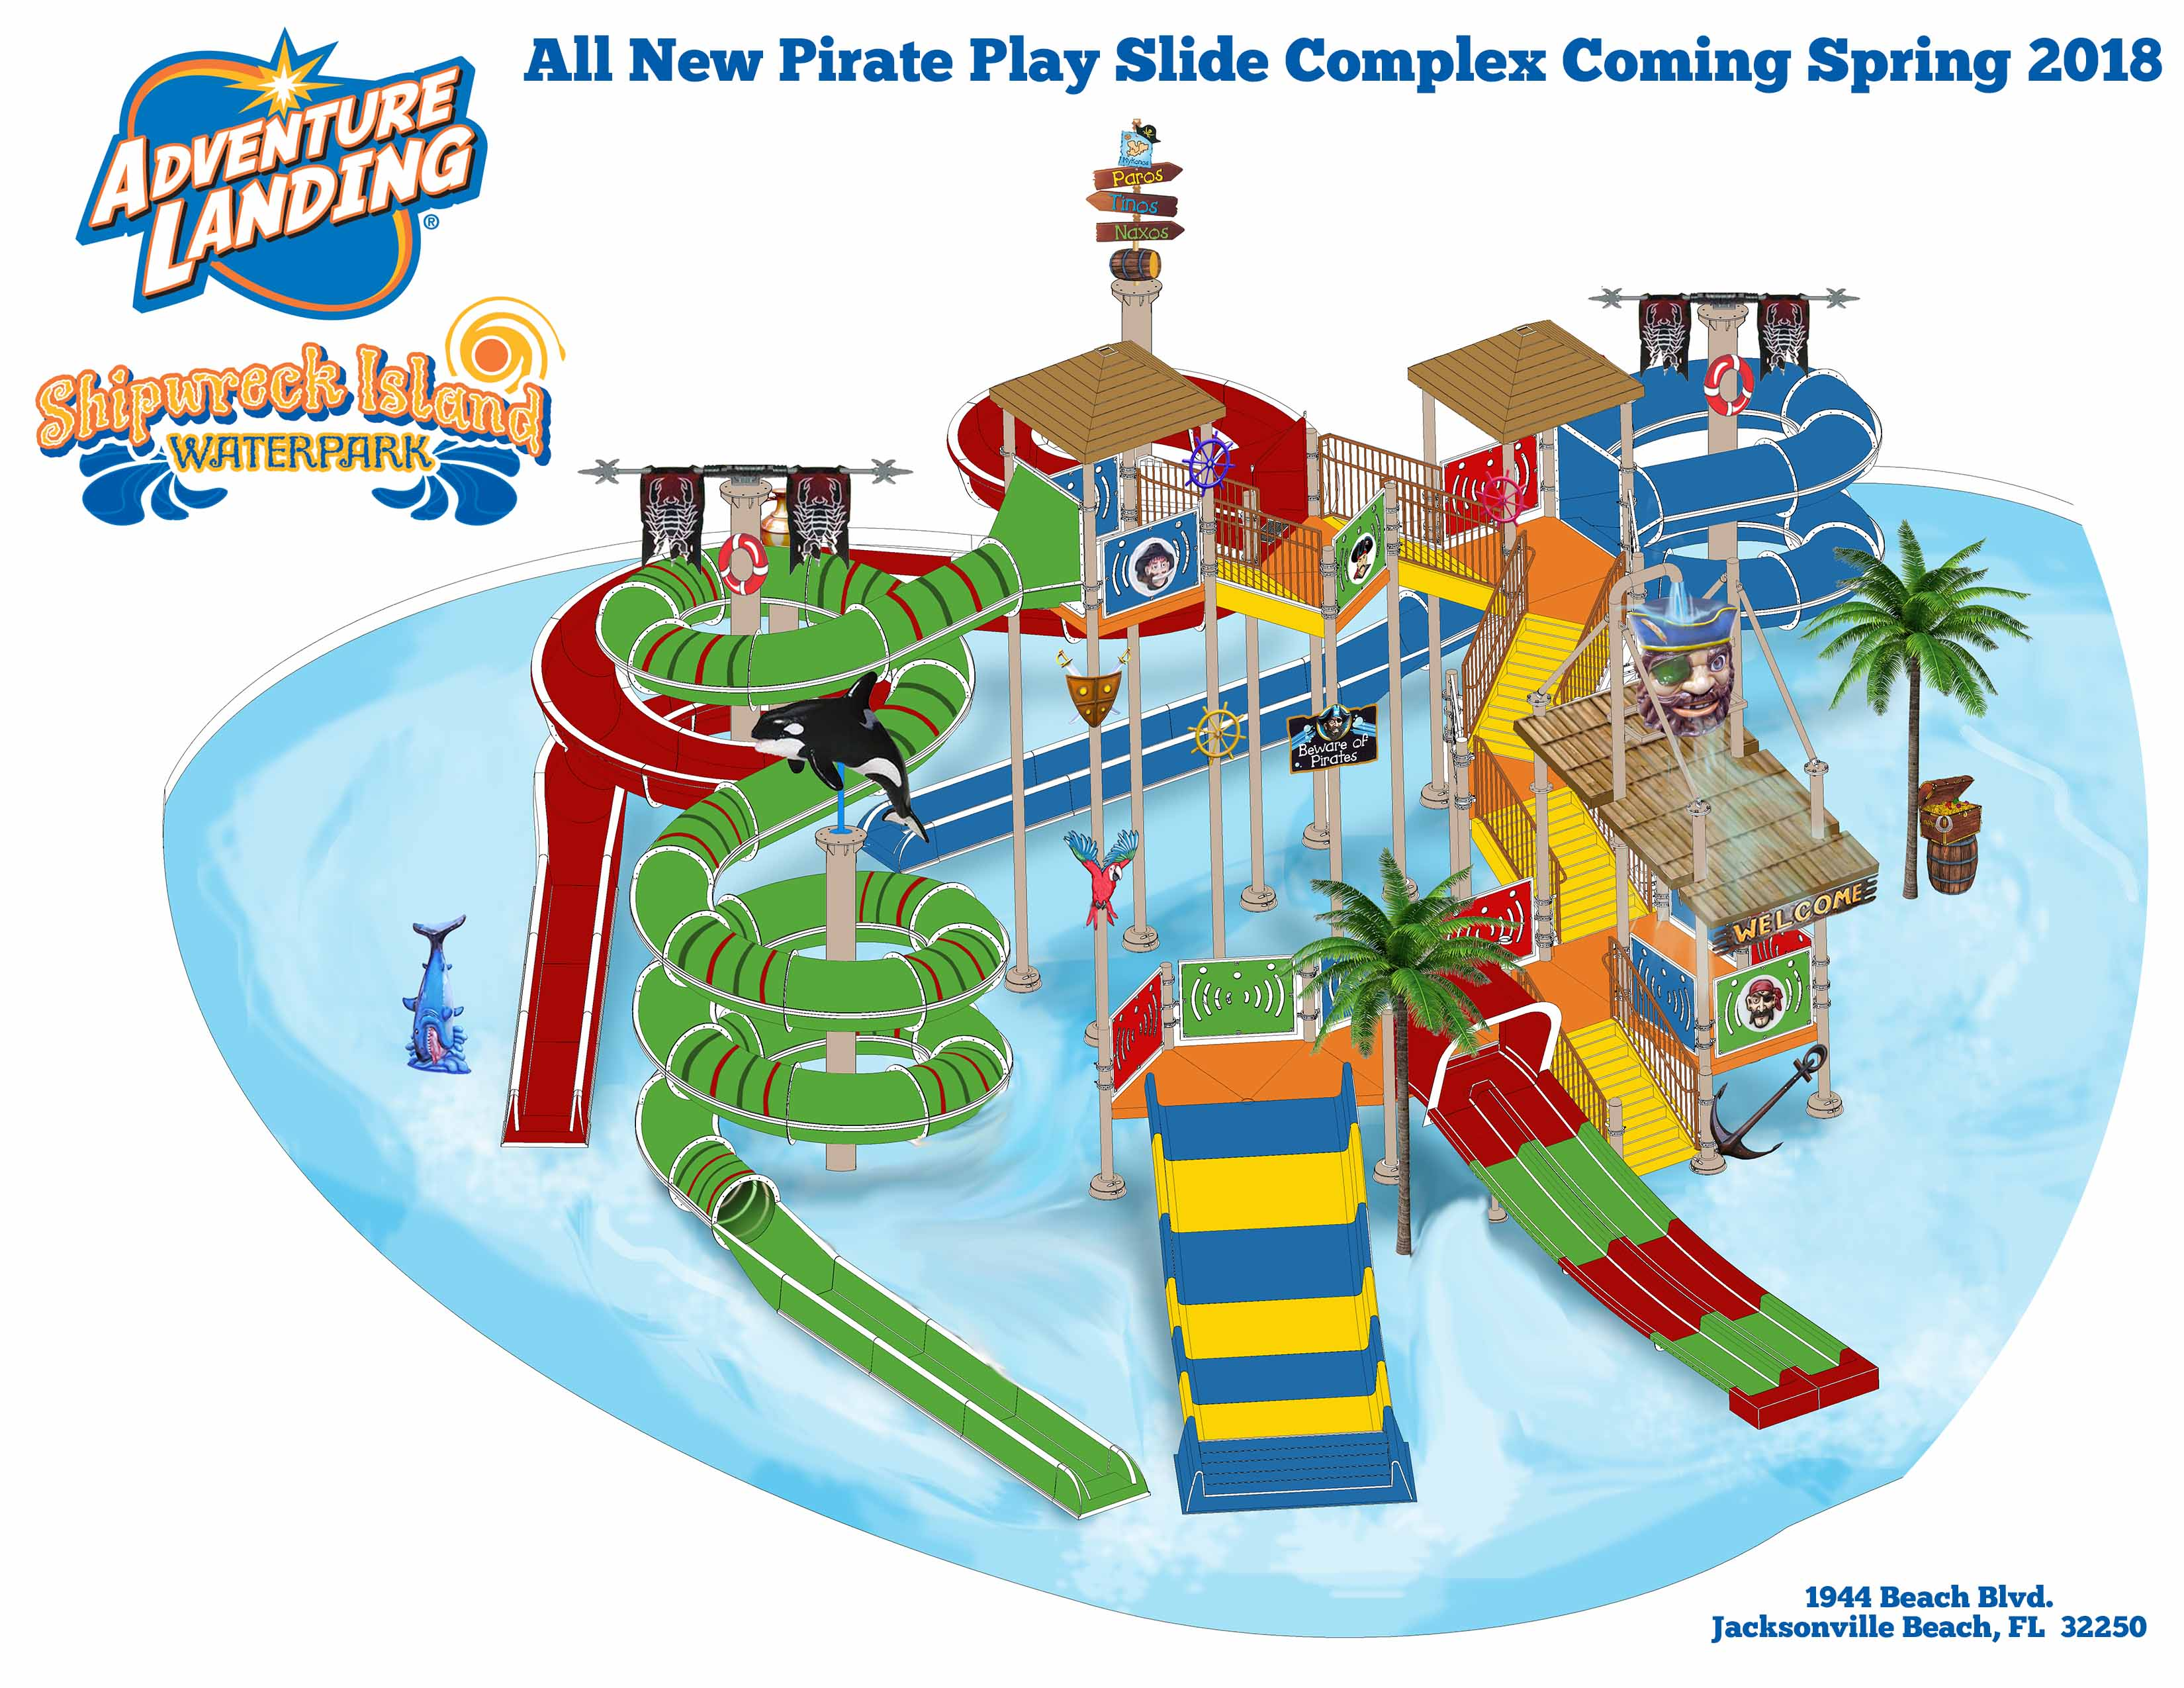 Go Karts Jacksonville Fl >> Build Out of New $1 Million Interactive Pirate Play Slide Complex at Adventure Landing Opening ...